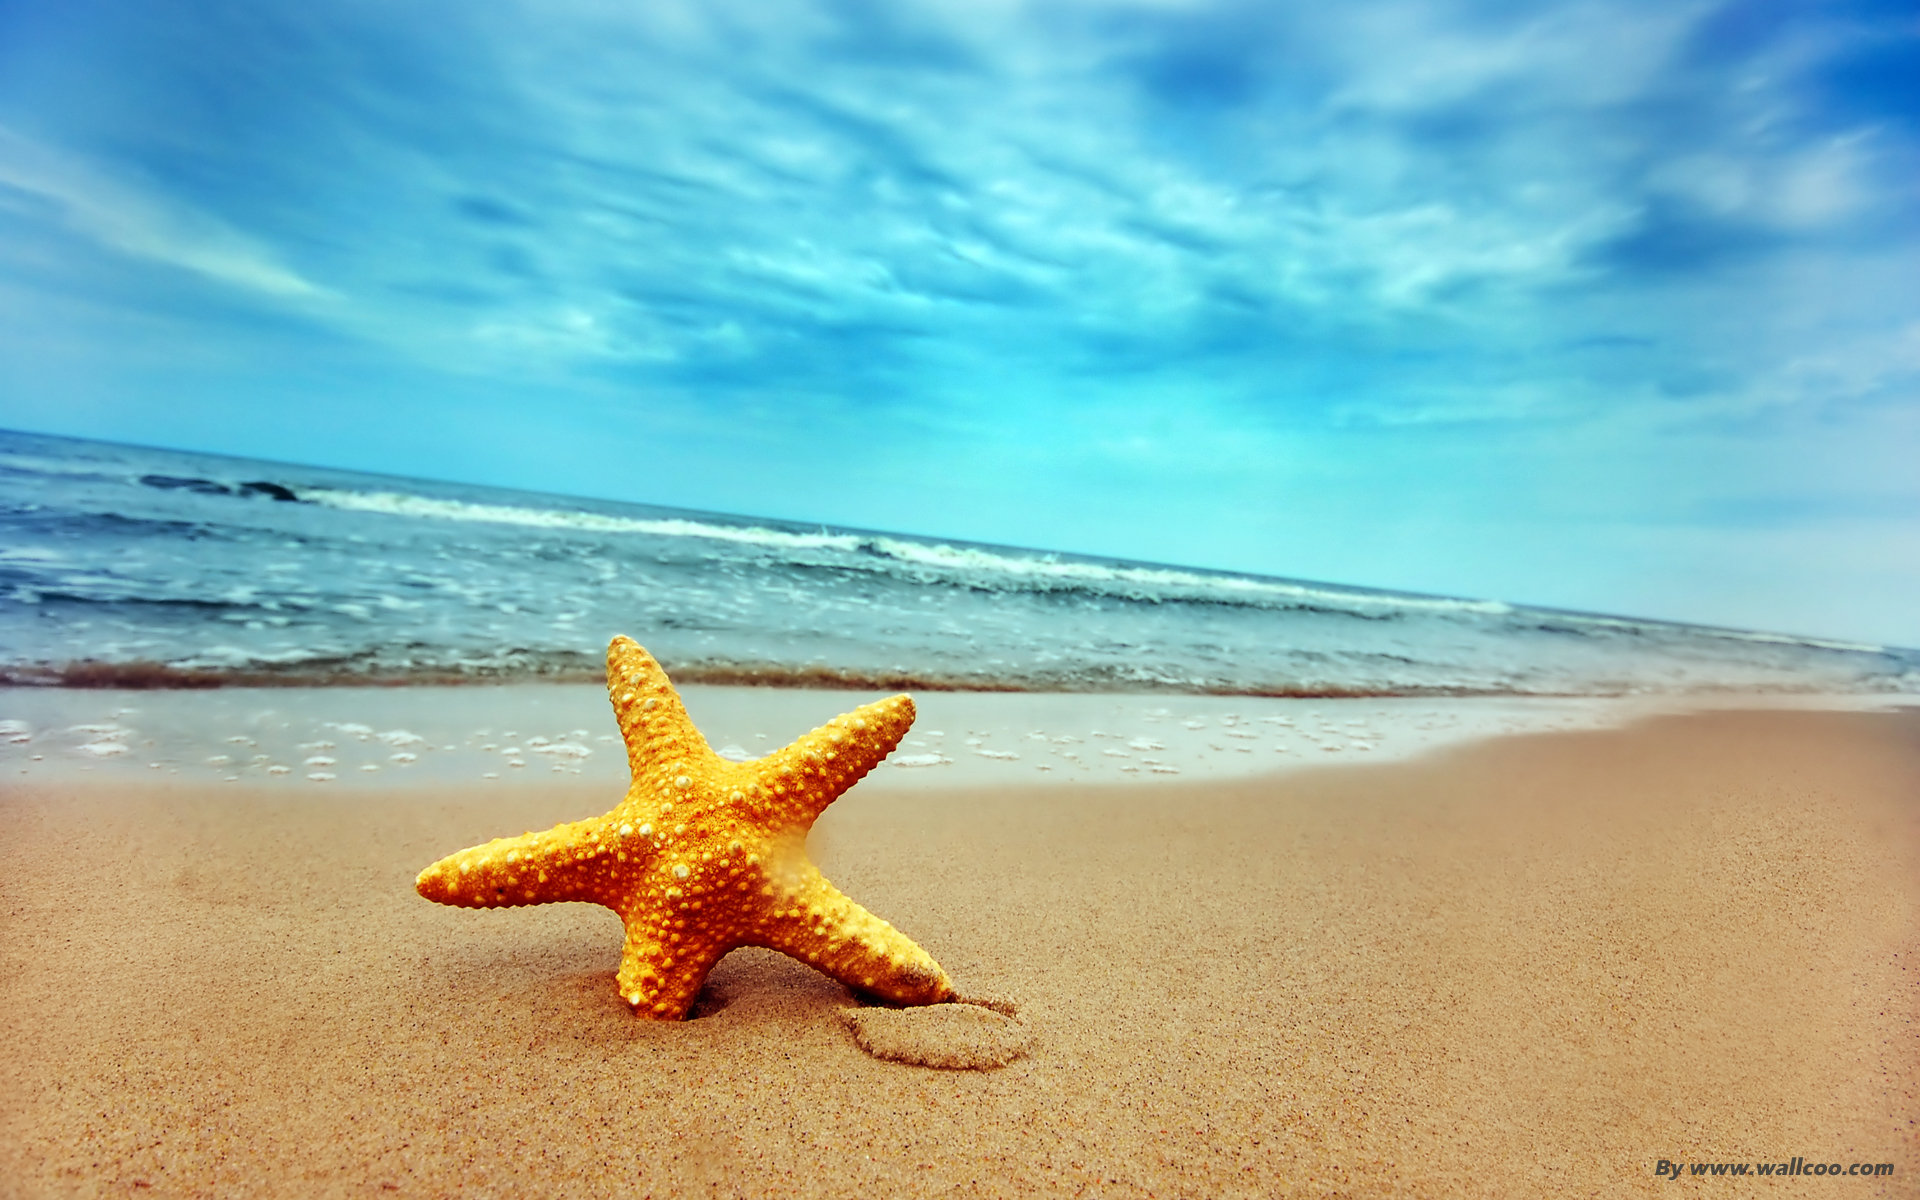 Starfish on the beach 17258